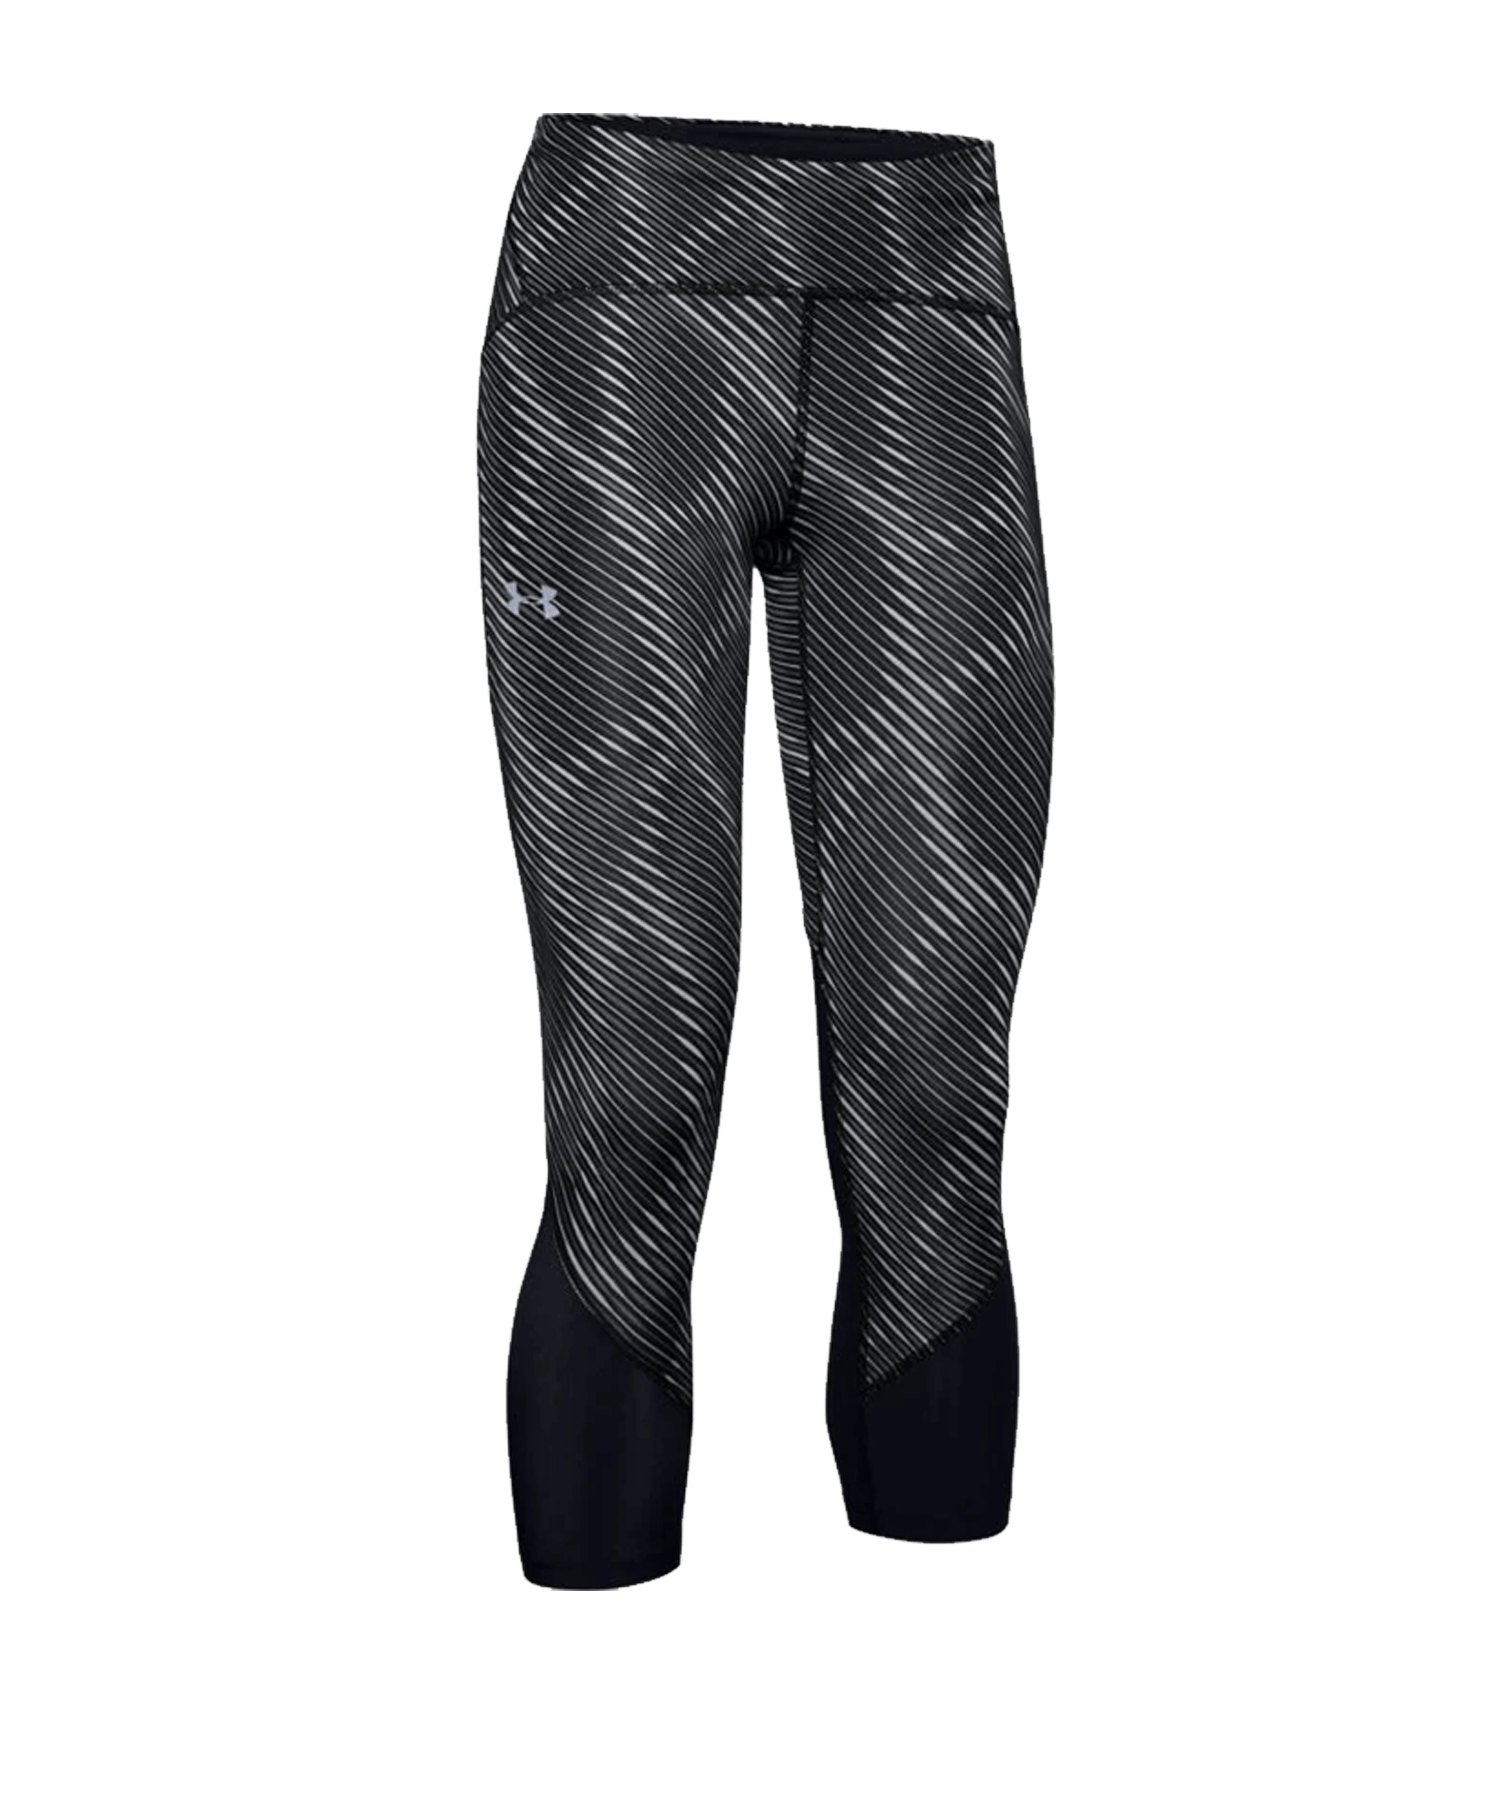 Under Armour Fly Fast Print Tight Damen F001 - schwarz